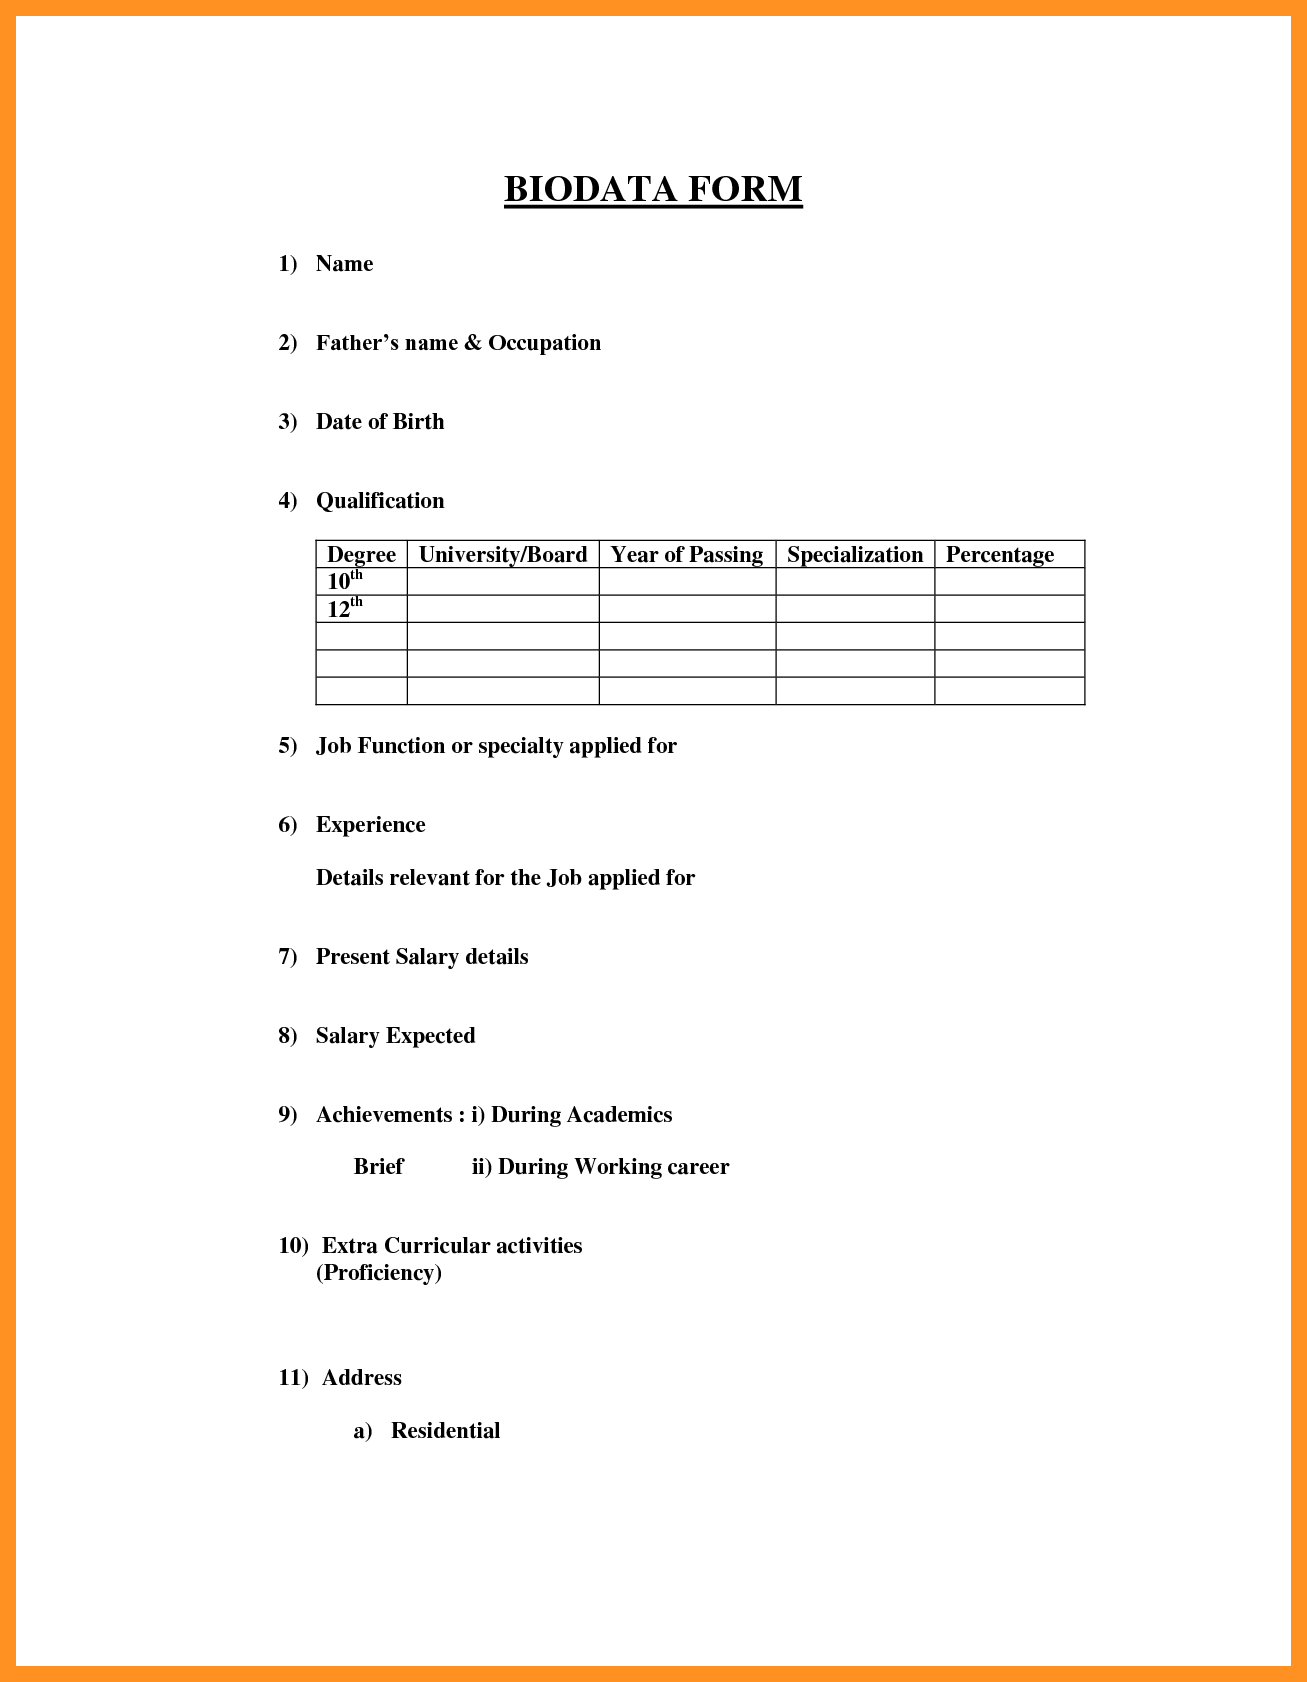 template word petition download free forms samples for pdf there are